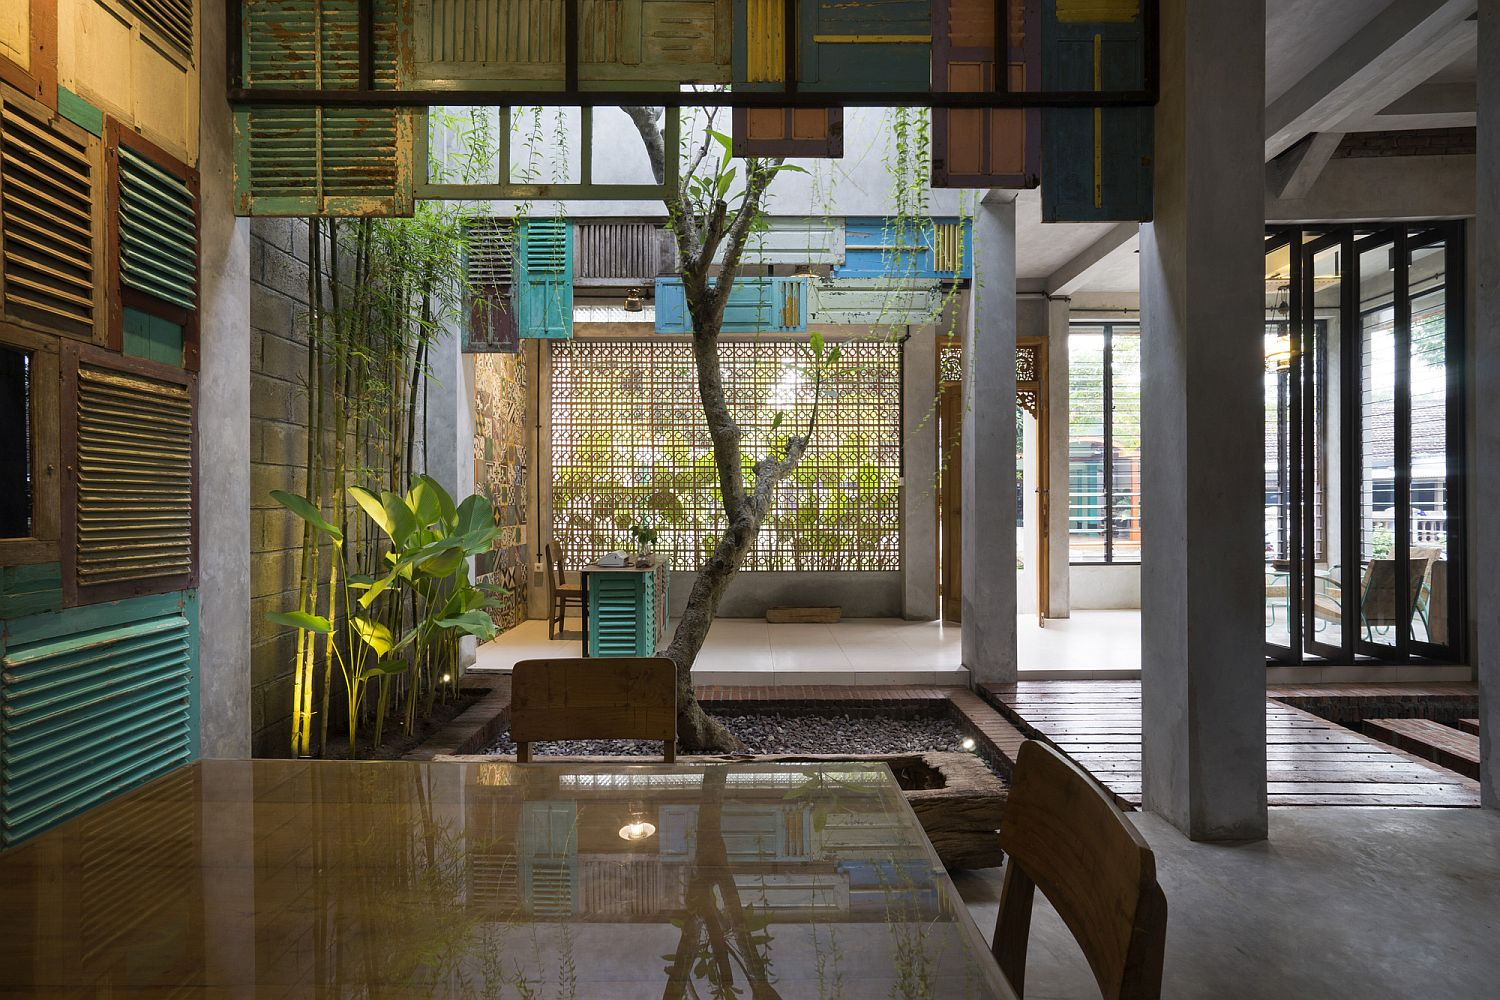 Gorgeous illumination and greenery gives the interior a relaxing vibe